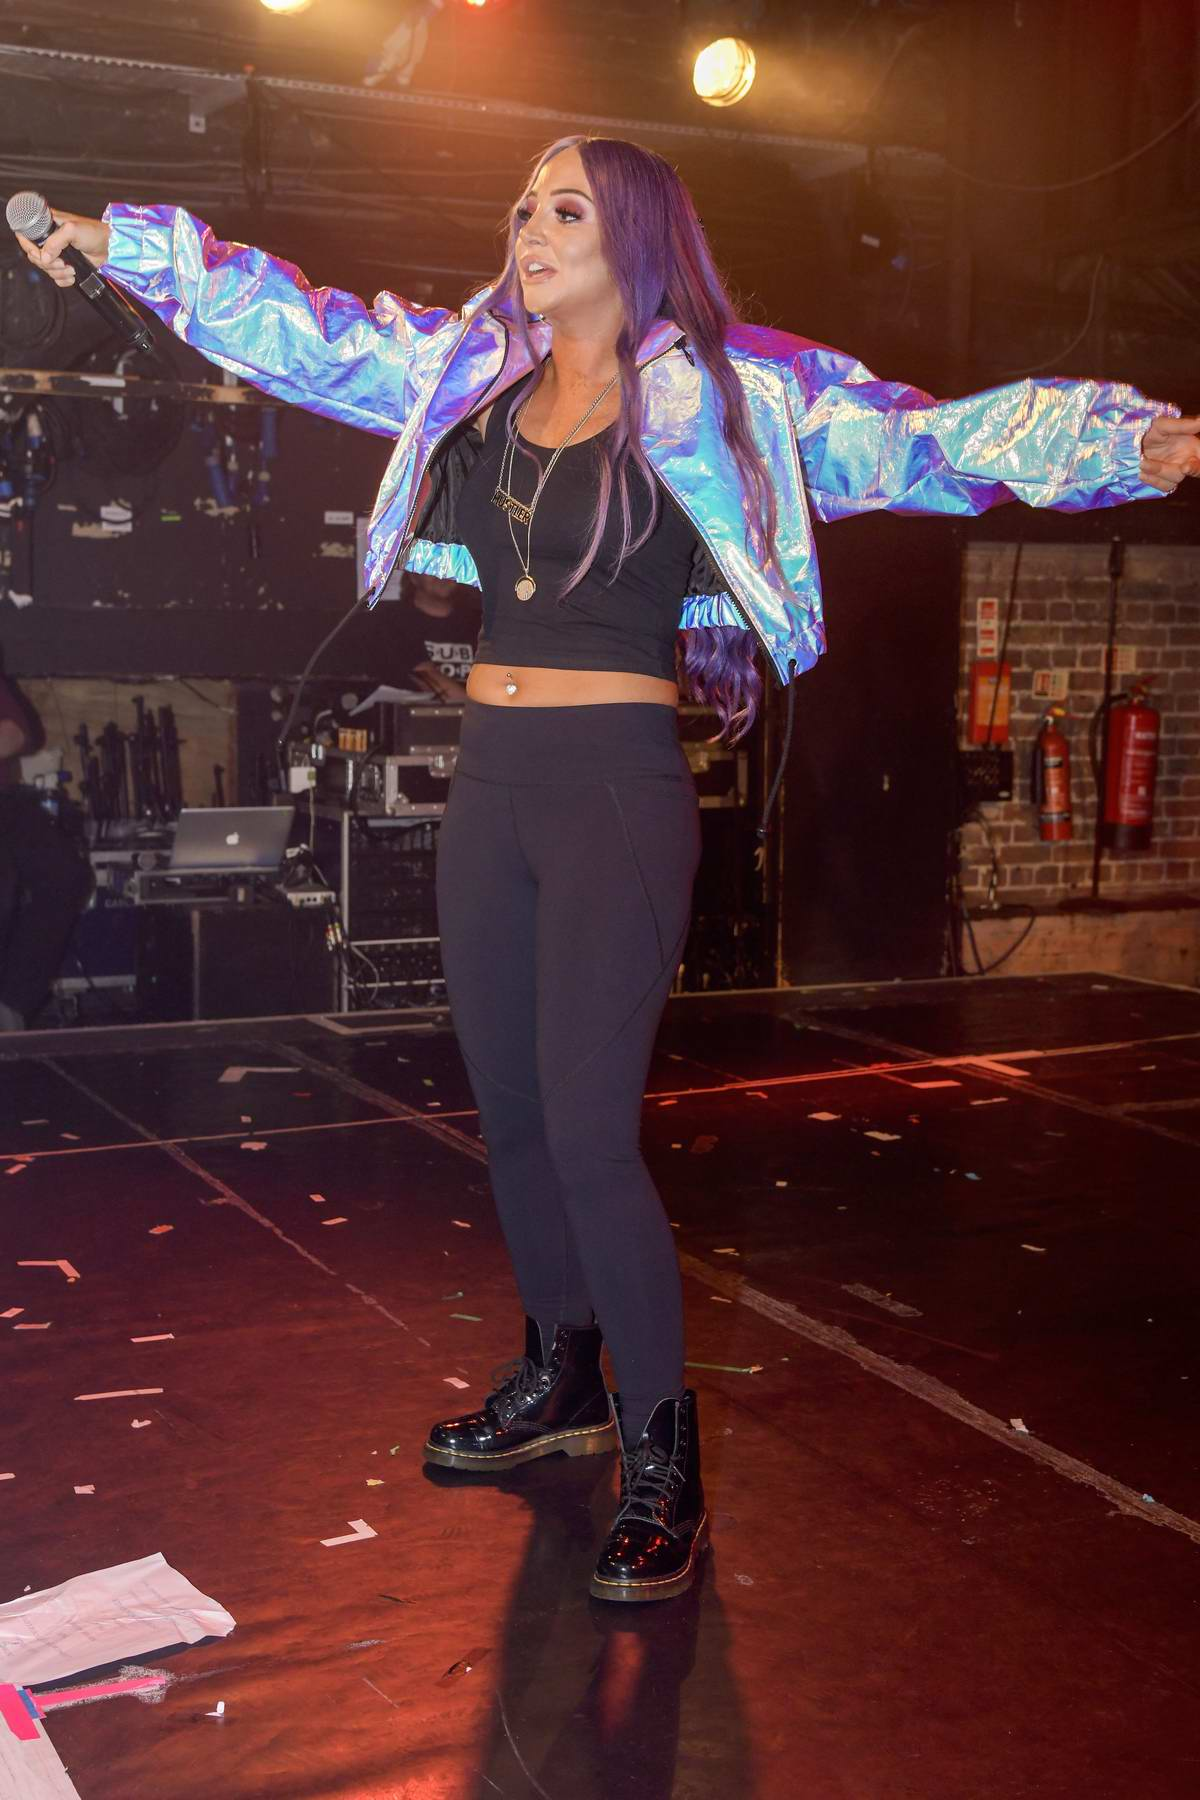 Tulisa Contostavlos launches her new single 'Daddy' at G-A-Y in London, UK